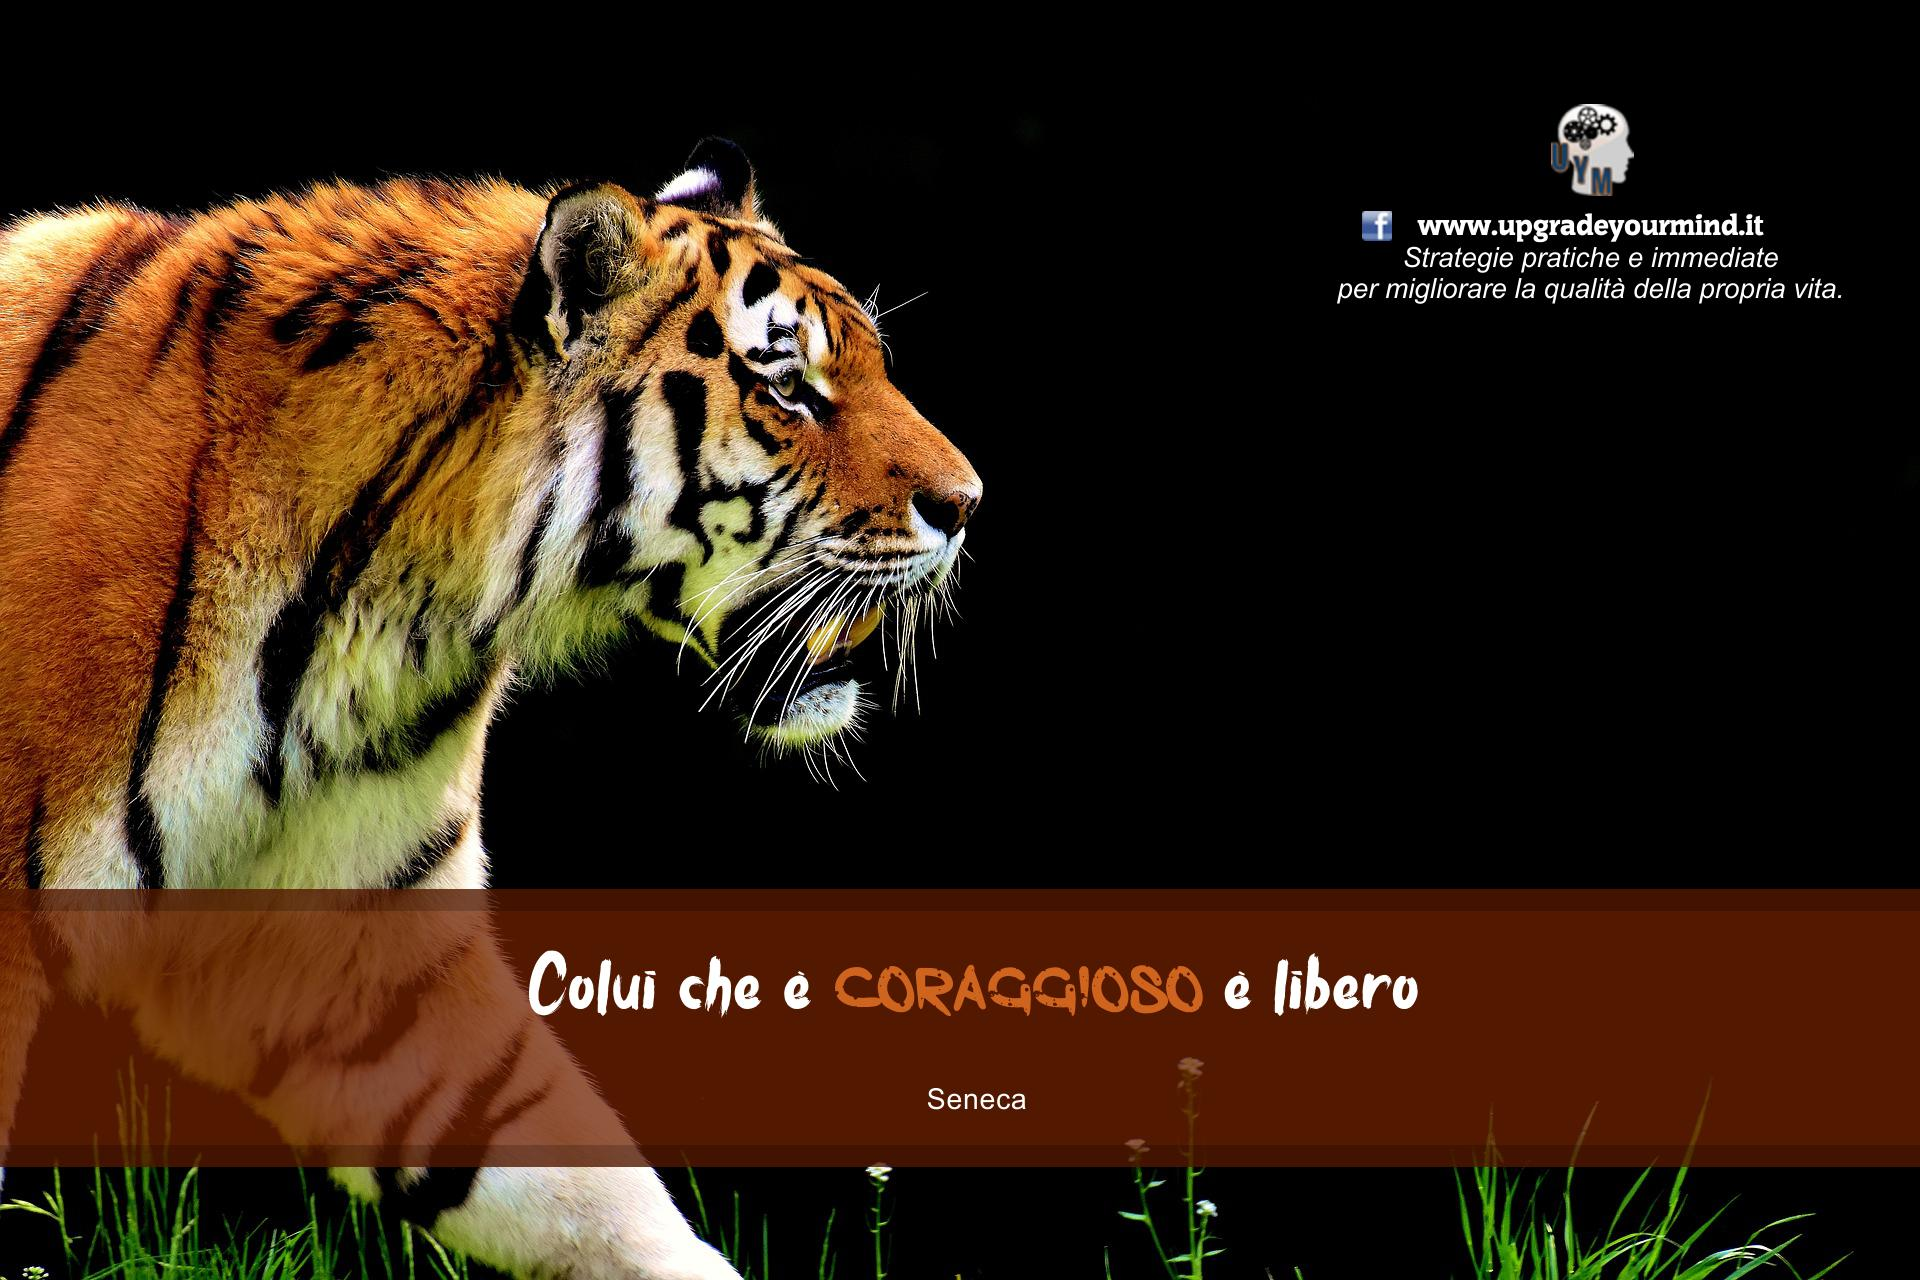 Animated Desktop Background Wallpaper Immagini Belle Con Frasi Significative Su Upgrade Your Mind